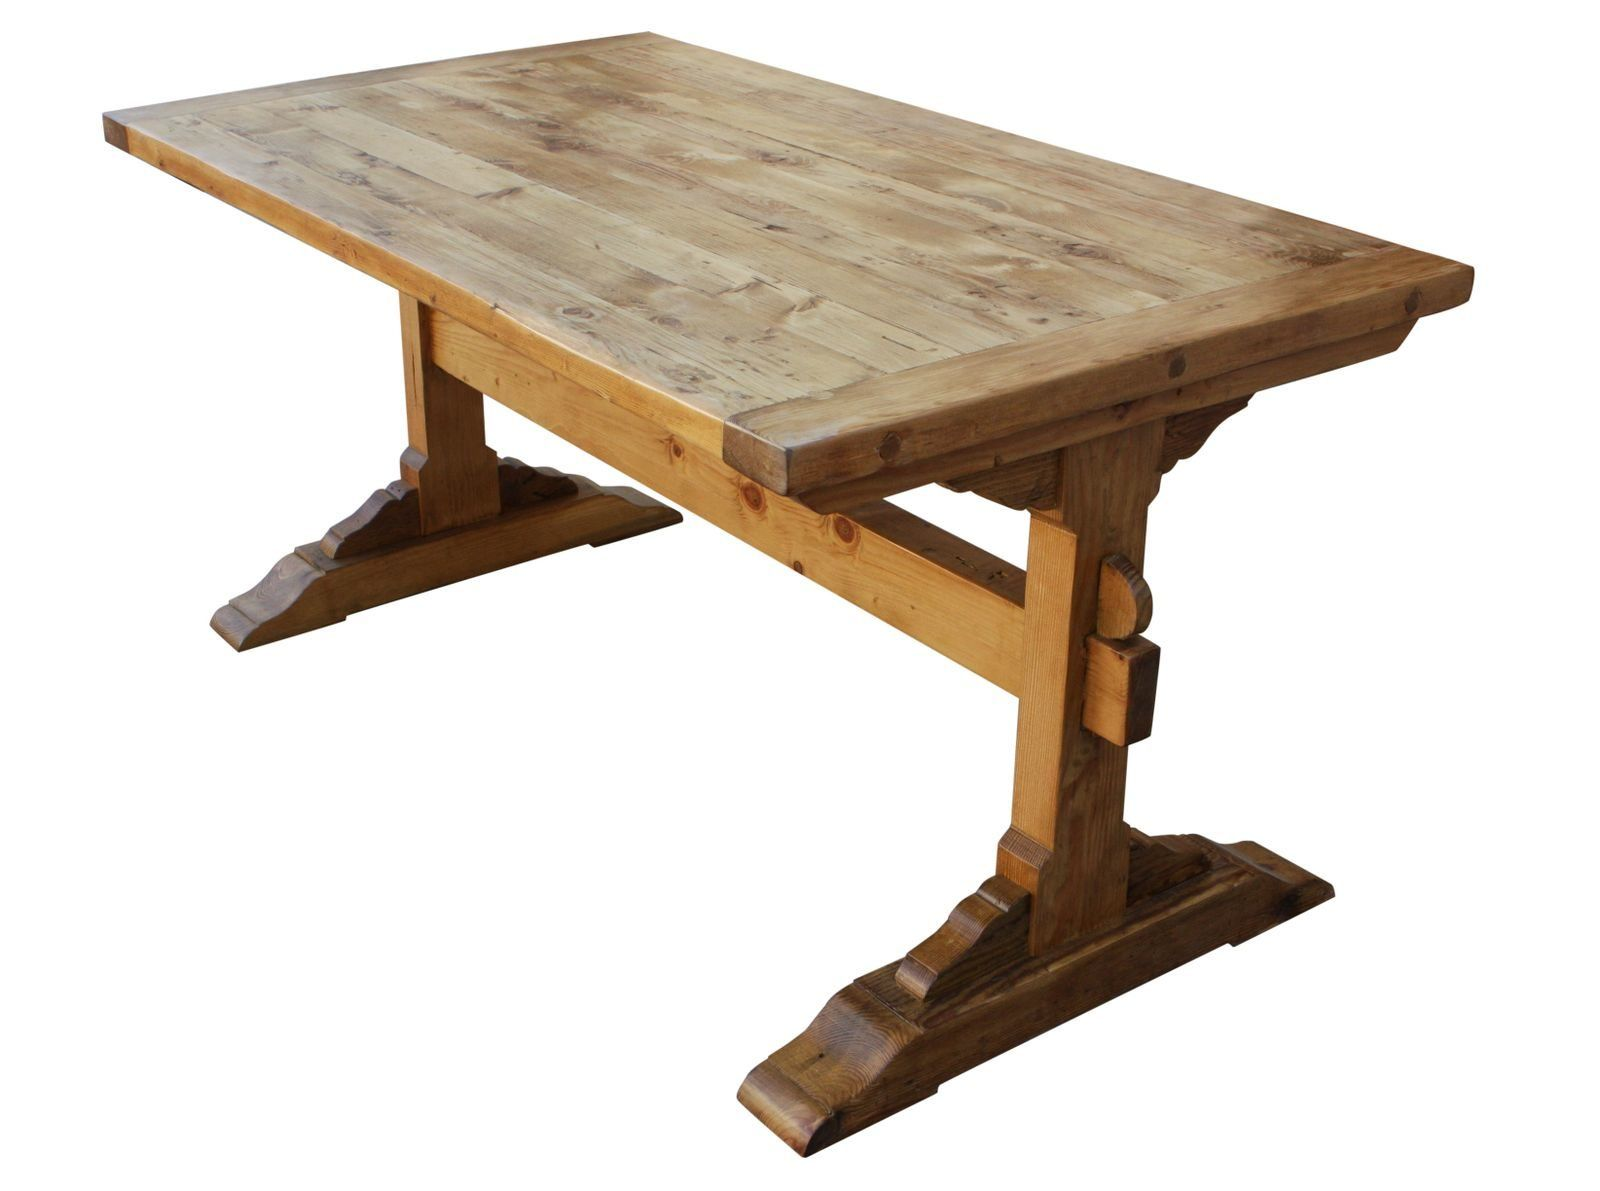 Tressel Table | Santa Barbara Dining Trestle Table Built In Reclaimed  Lumber Chunky .